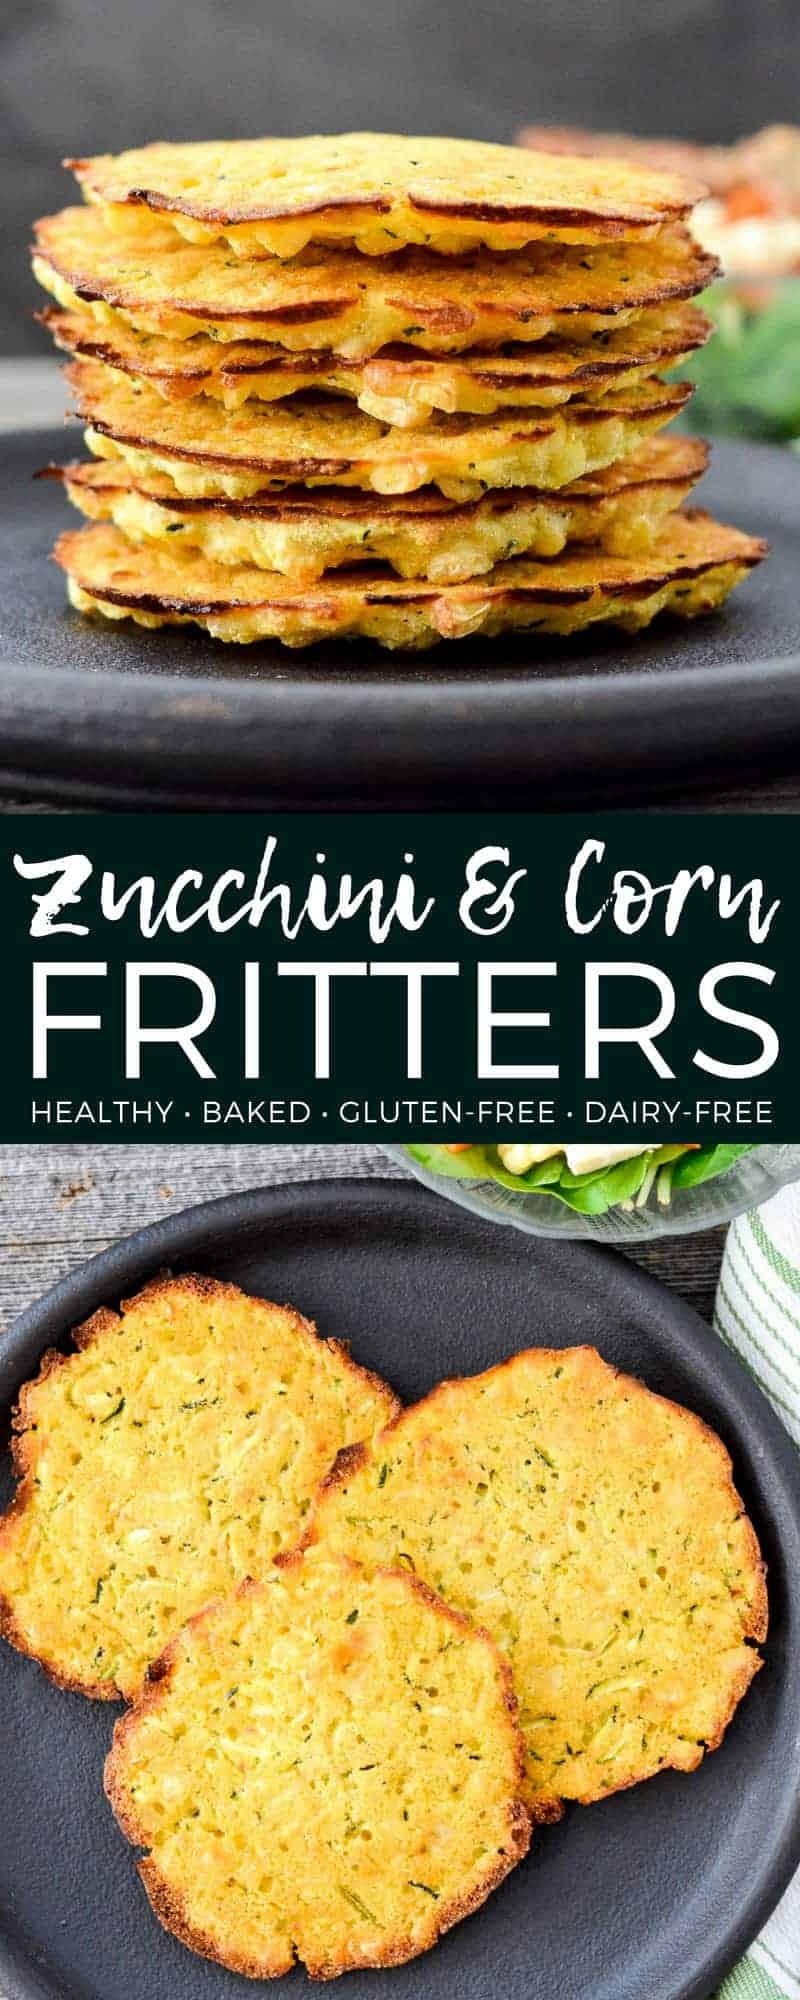 Easy, healthy Baked Zucchini Corn Fritters! Loaded with vegetables these delicious fritters are gluten-free, dairy-free & vegan! They are baked & not fried but still taste amazing!  #zucchini #corn #fritters #healthy #glutenfree #dairyfree #baked #recipe #vegan